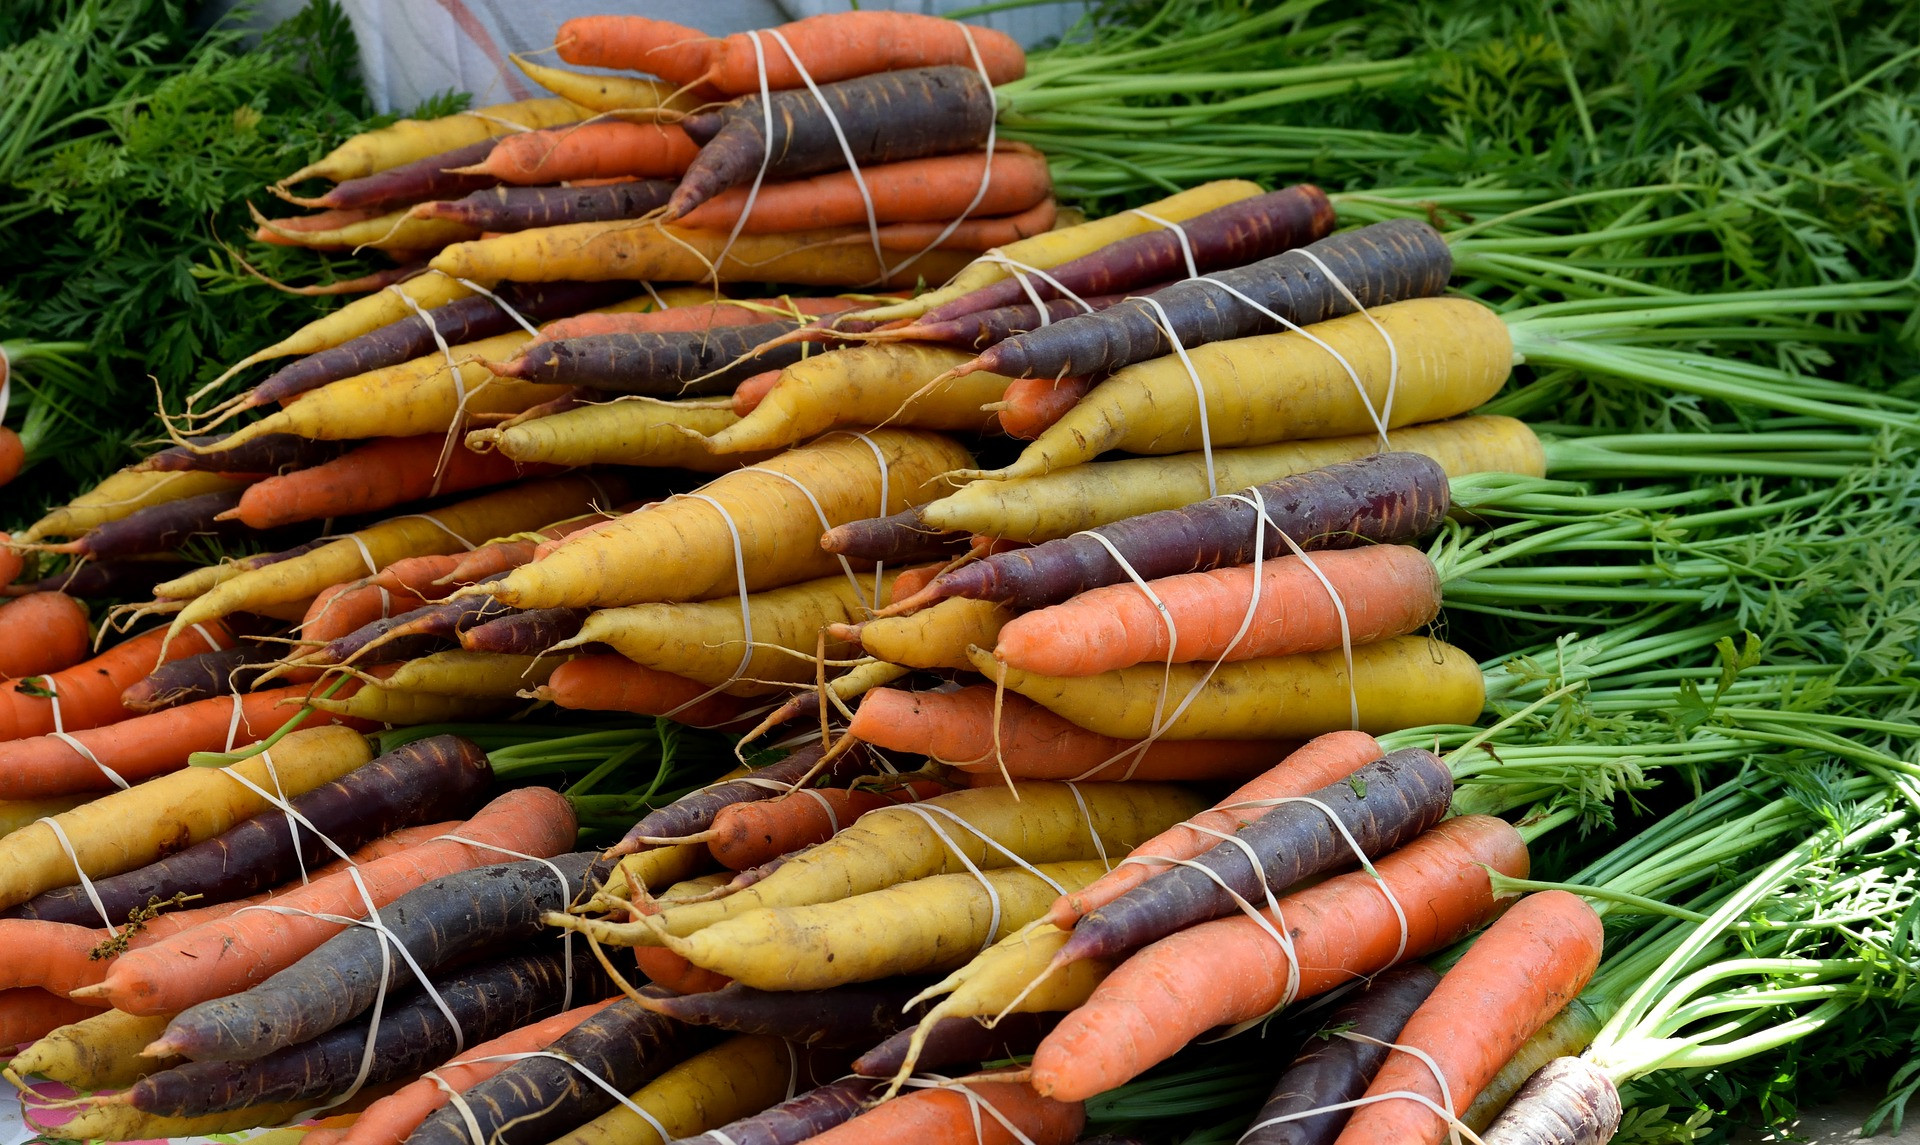 Organic Carrots - multi-colored